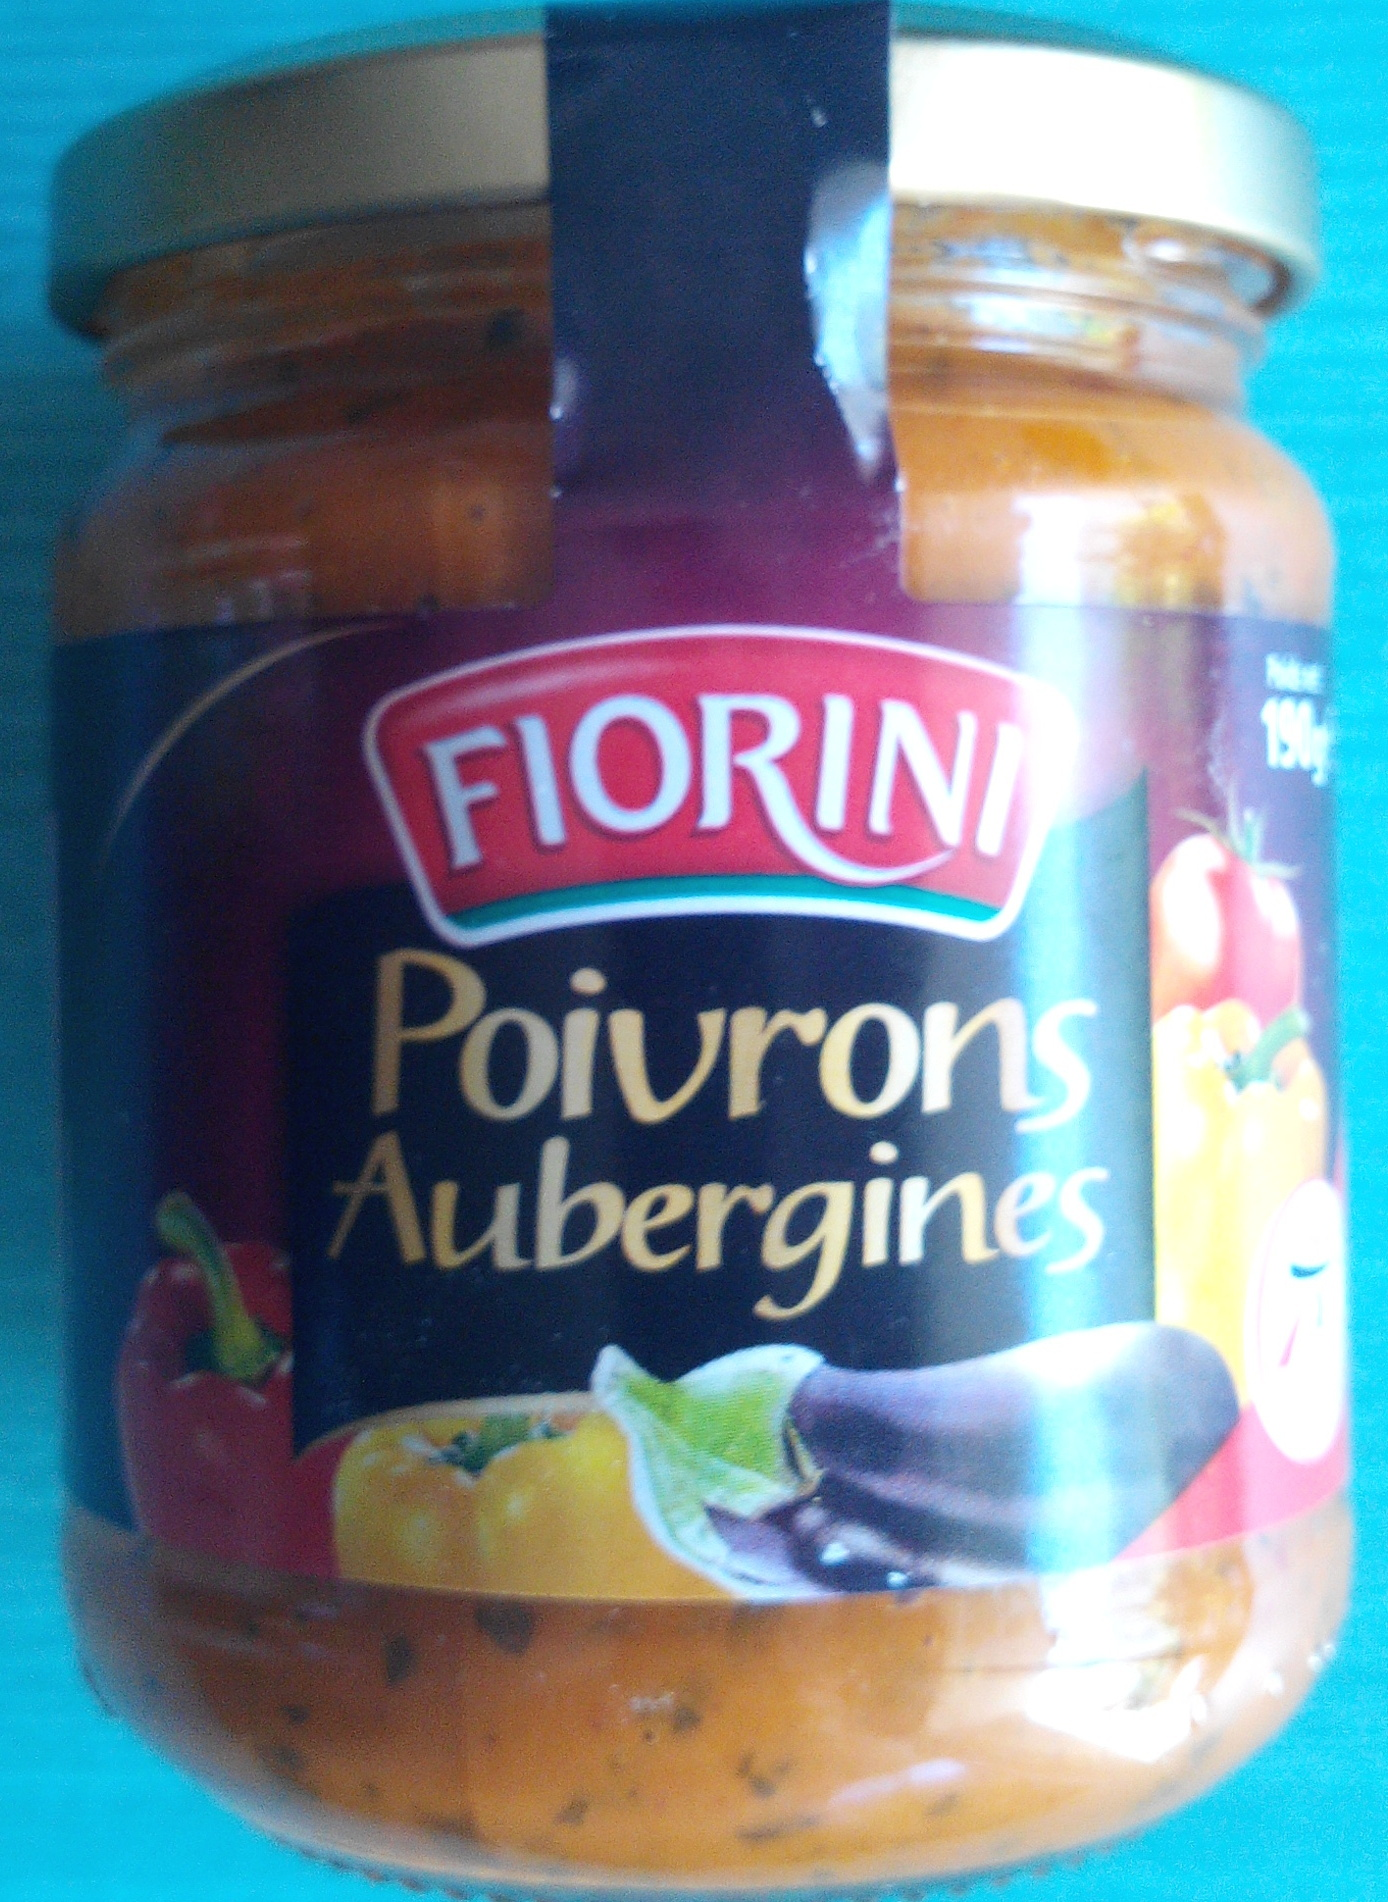 Poivrons Aubergines - Product